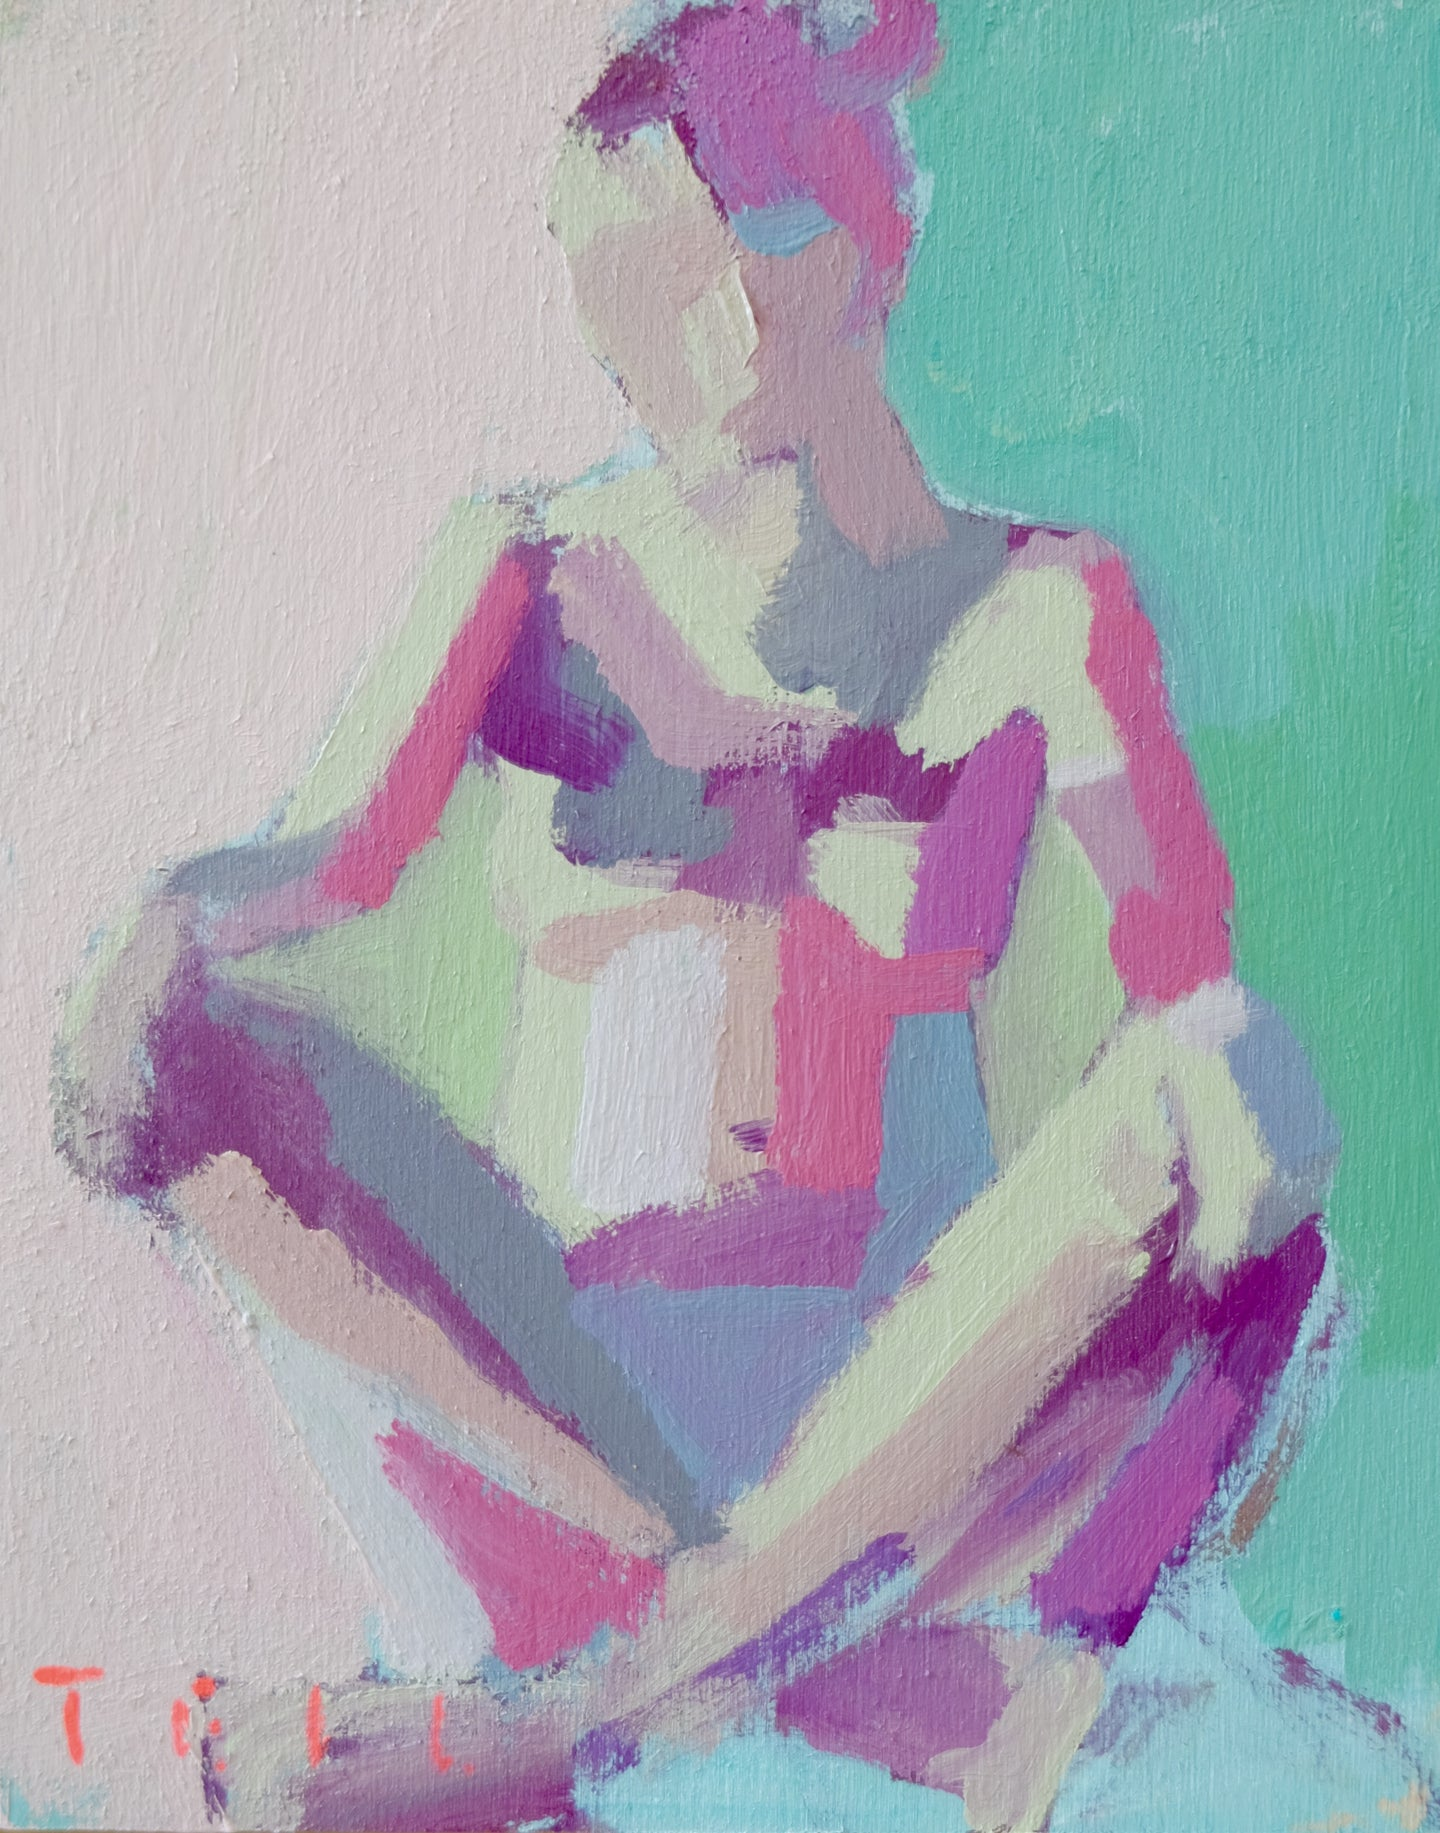 Summer Figure Study No. 6, 8